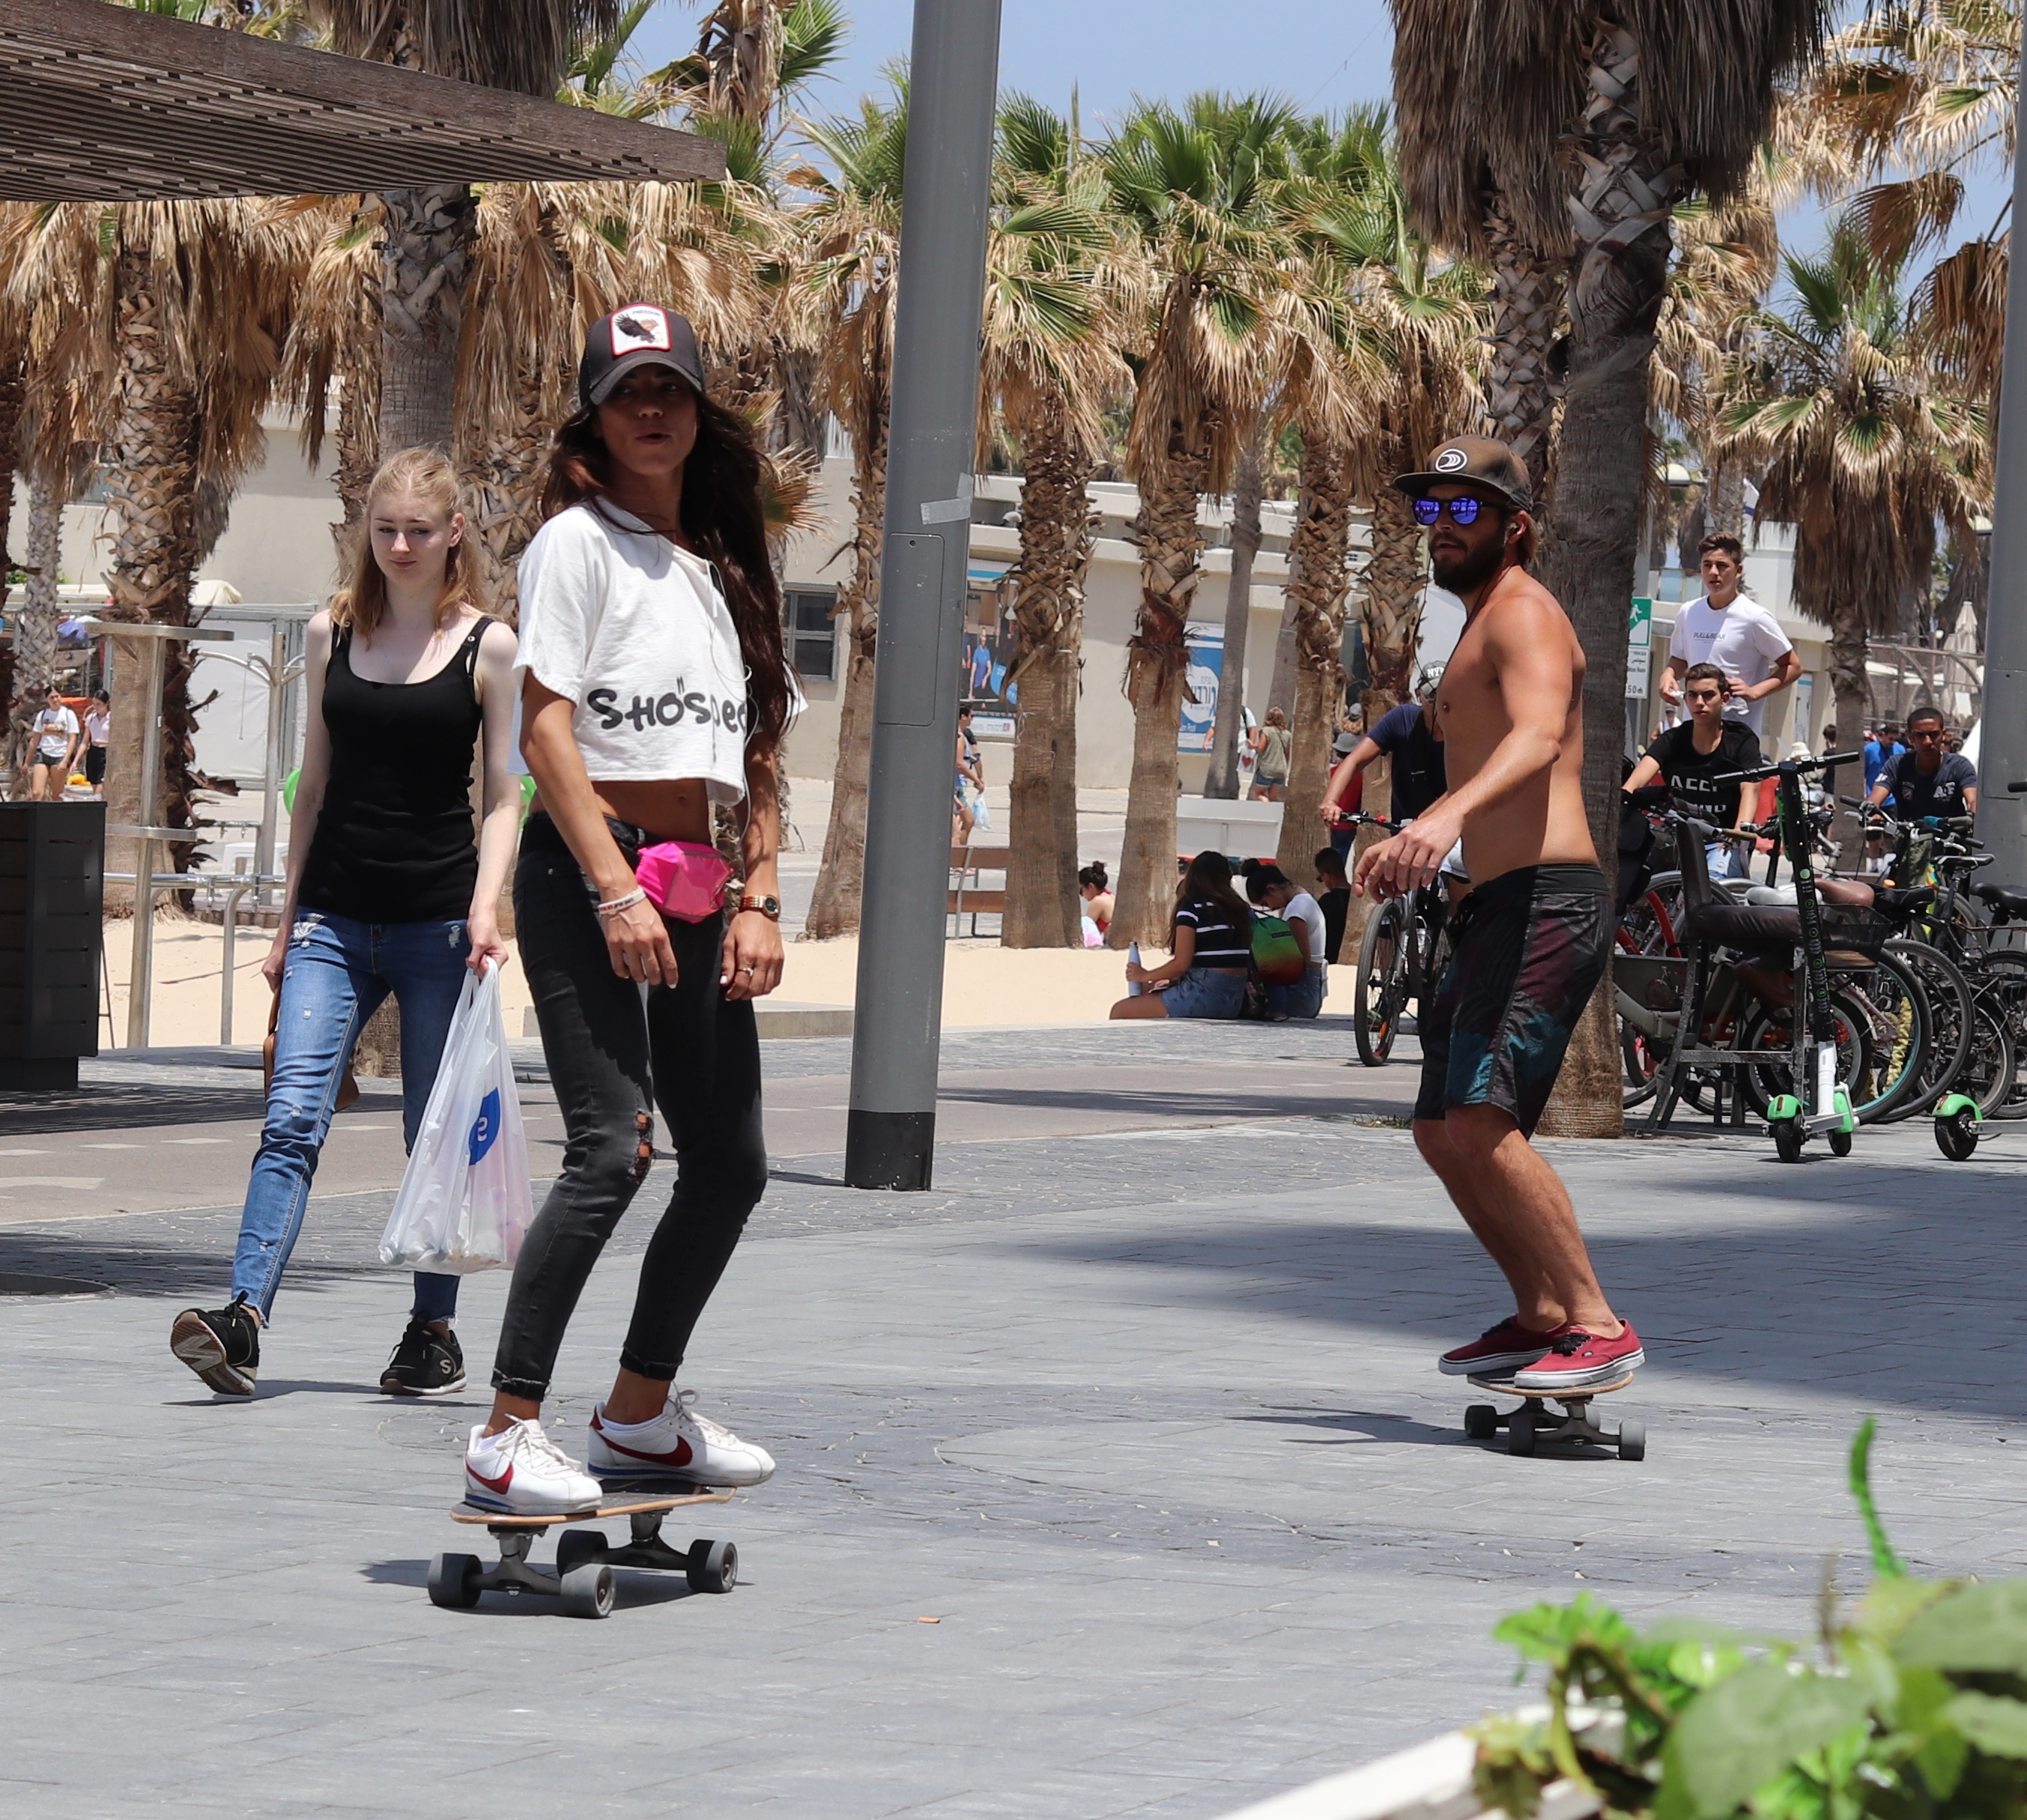 Skateboarders on the Promenade of Gordon Beach, Tel Aviv